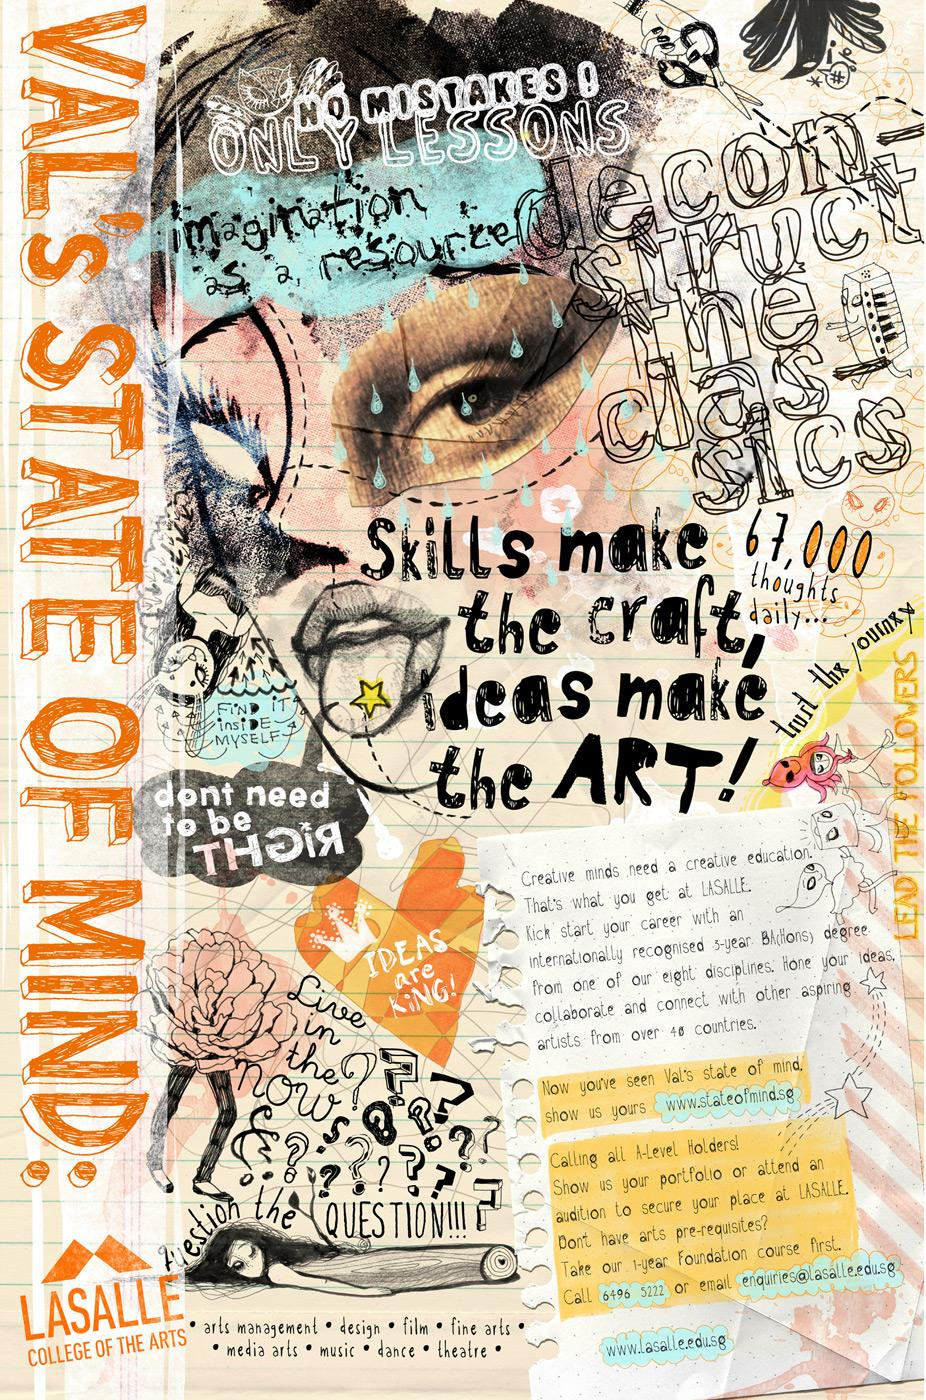 Lasalle College of the Arts Print Ad -  Kat's State of Mind